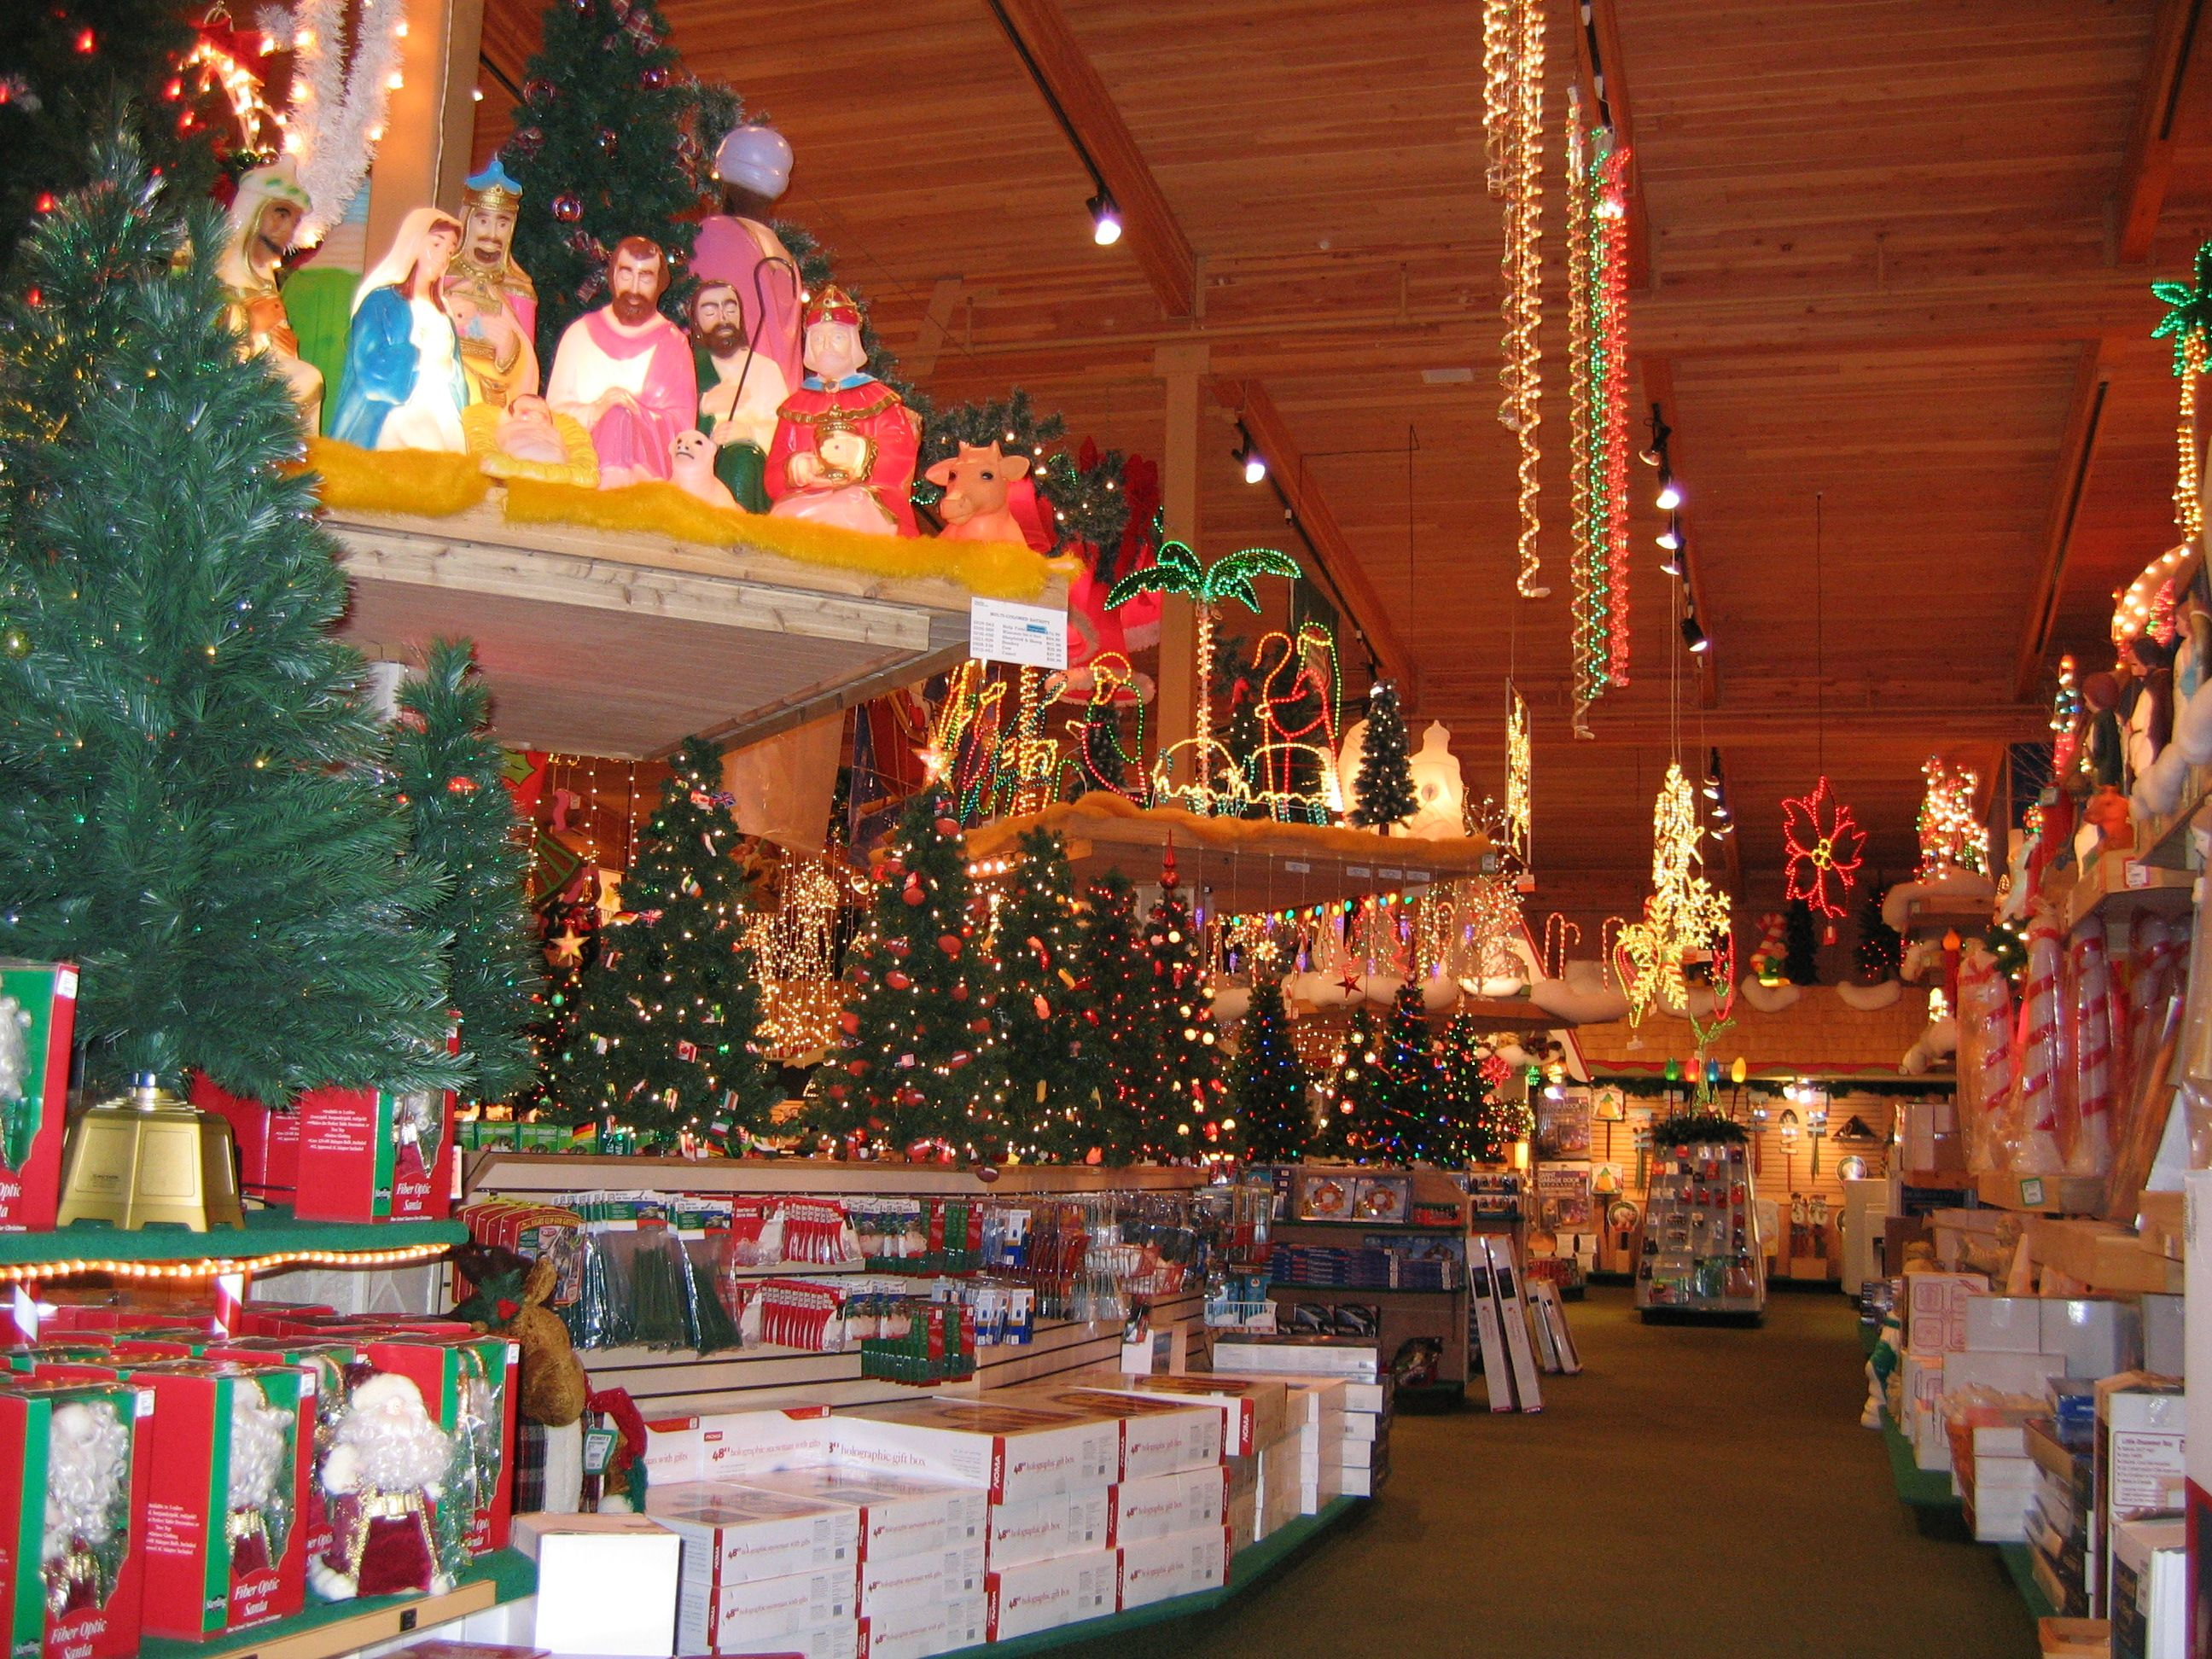 if you like holiday decorations you will love bronners the worlds largest christmas store - Largest Christmas Store